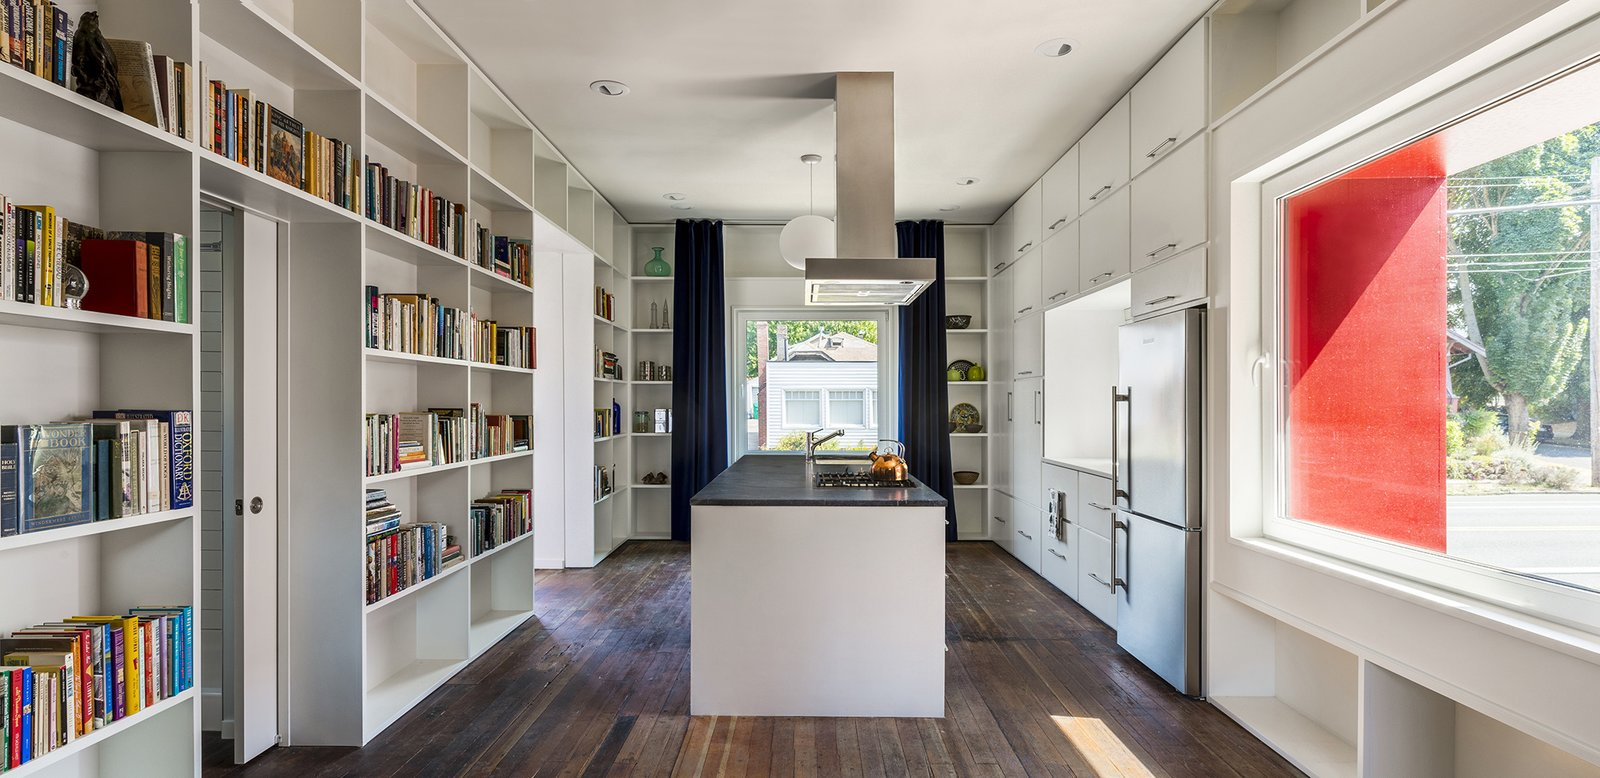 Inside, neutral tones and clean, modern lines prevail. Waechter designed each floor around a primary room, like the open-plan kitchen, with supporting spaces spread out around it.  A Bright Red Farmhouse-Style Home That's Surprisingly Modern Inside by Luke Hopping